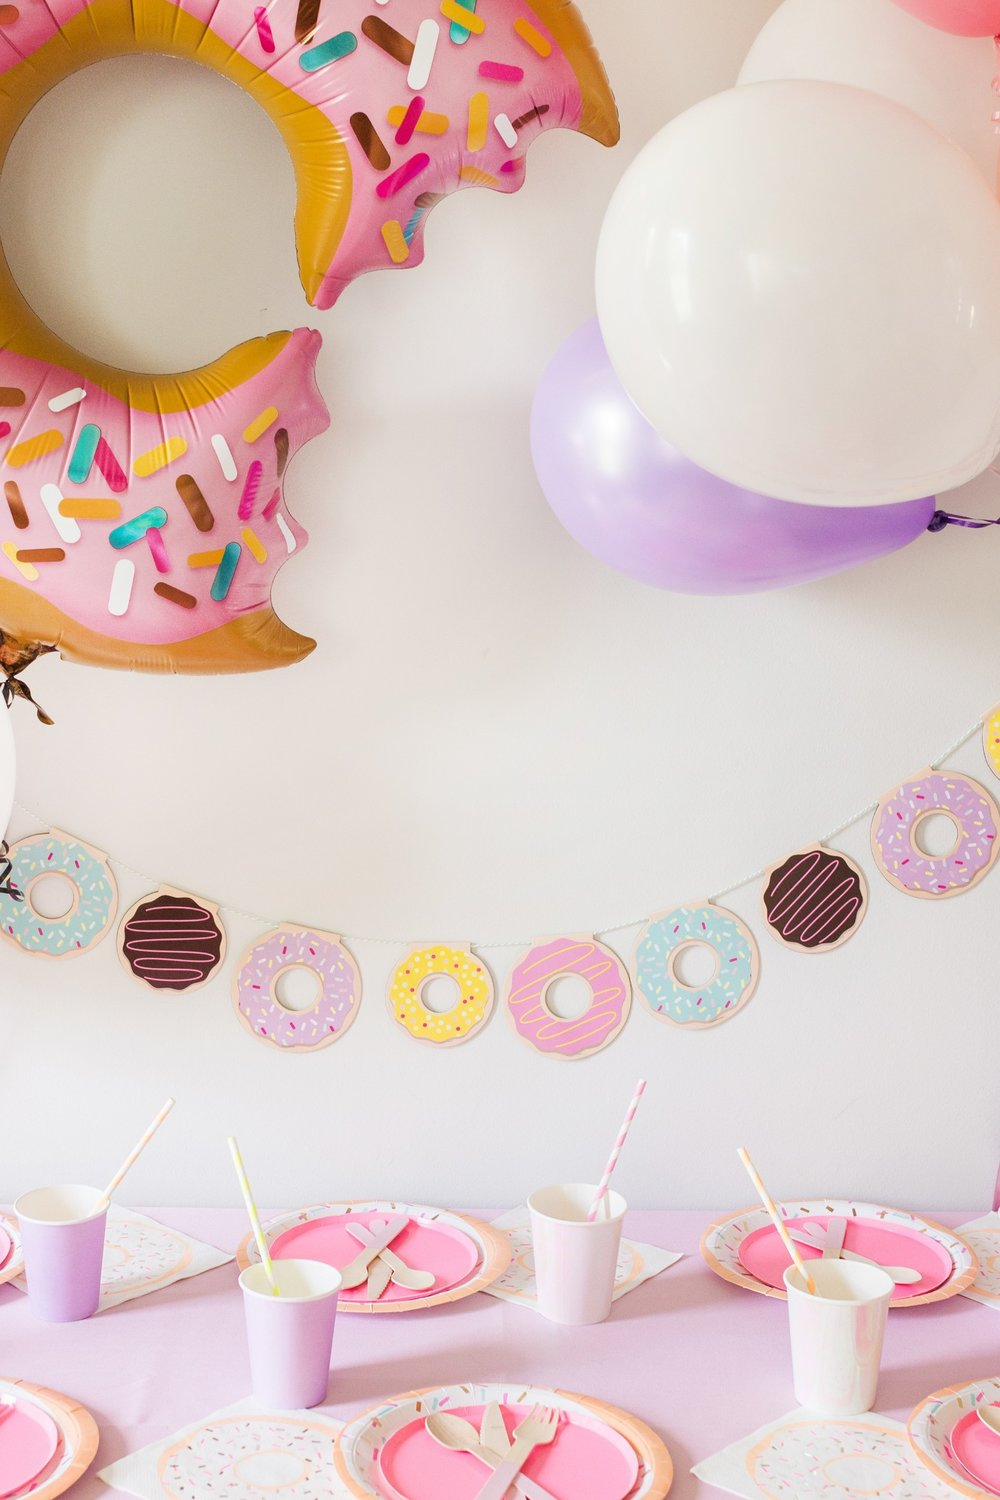 Donut-Party-Kit-Graceful-Host11.jpg